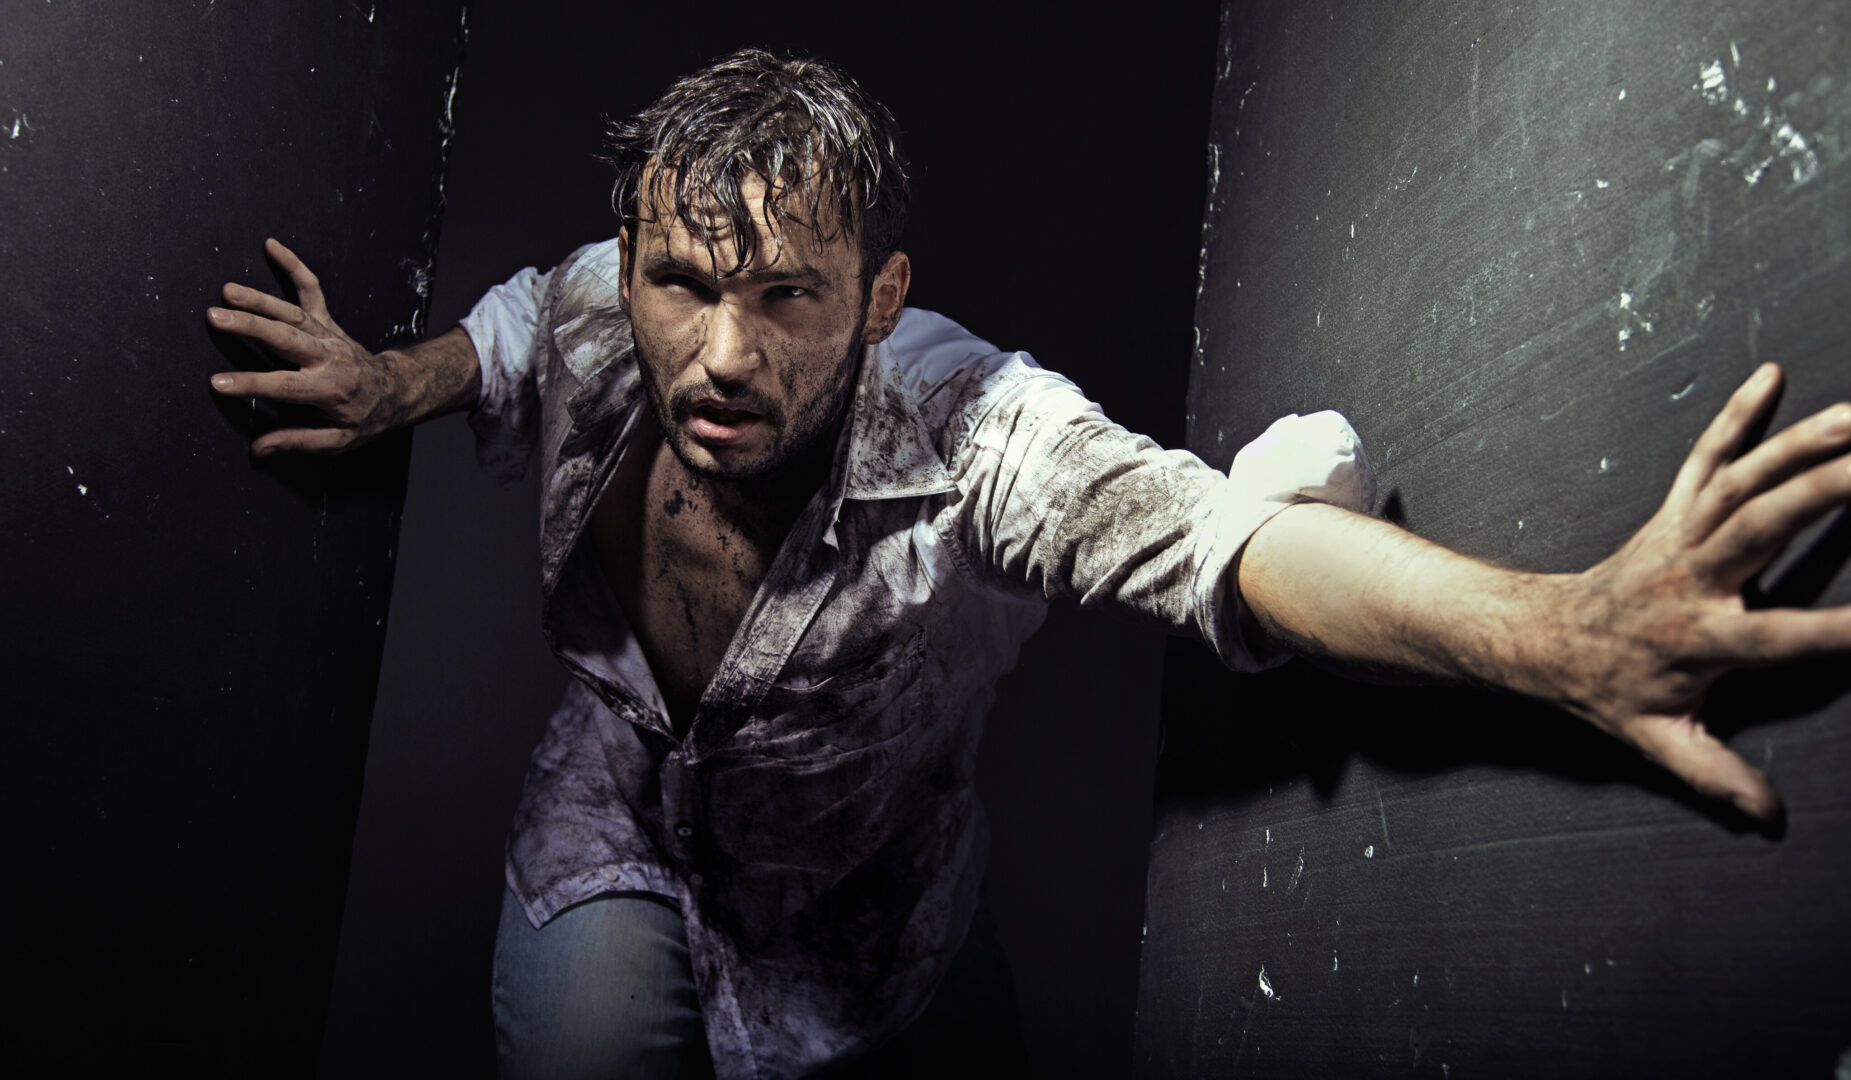 man wearing dirty clothes pushing against wall